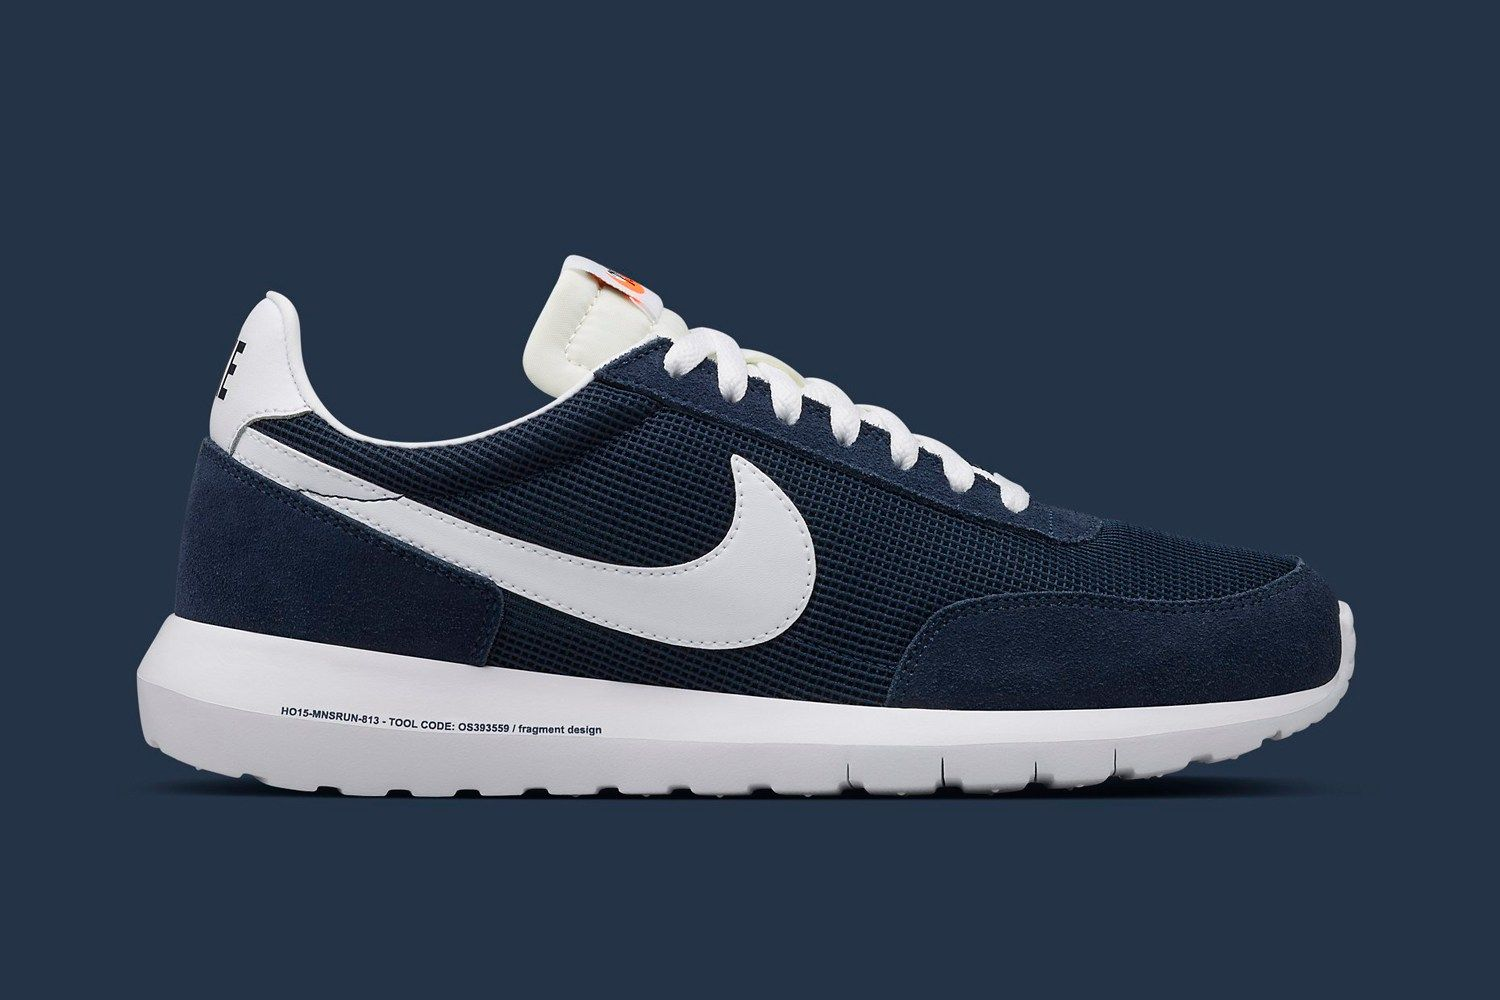 f72a644e51502 fragment design   NikeLab Mix Two Silhouettes to Premiere the Roshe Daybreak